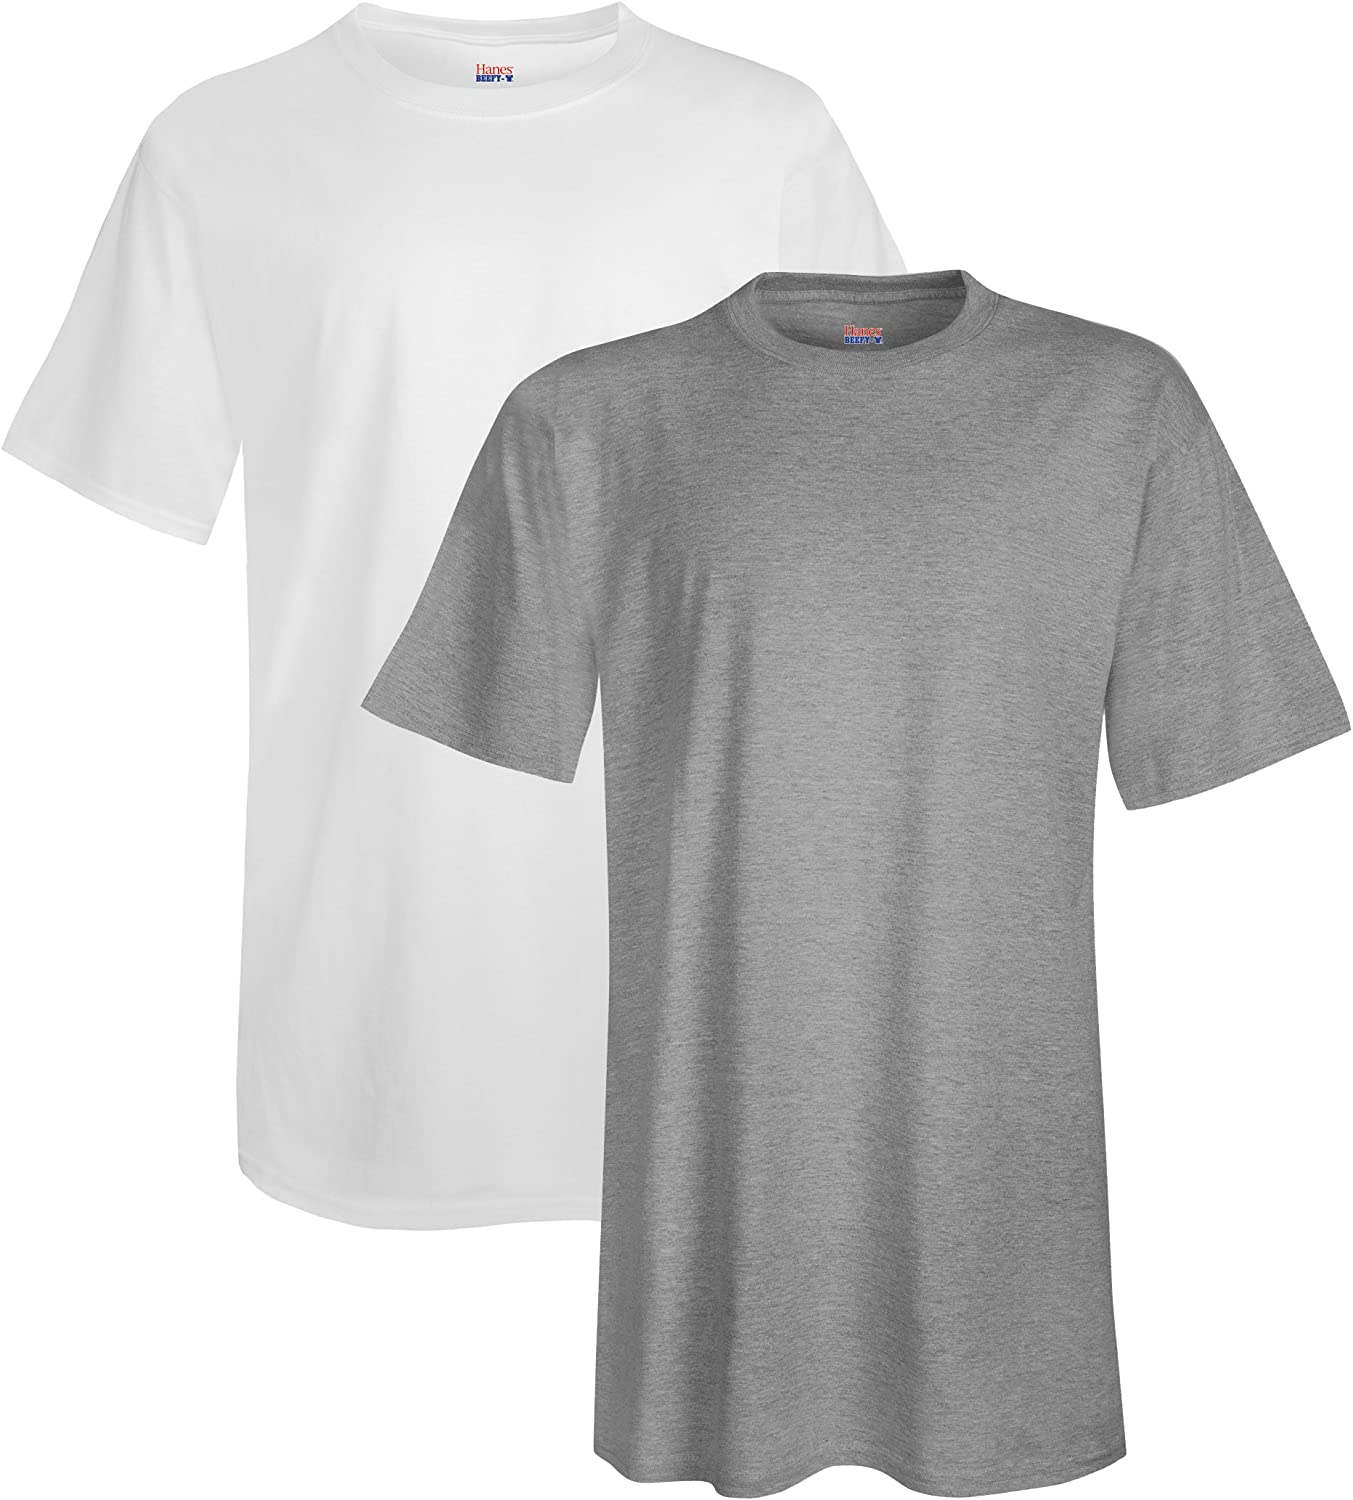 Hanes Men's Tall Short Sleeve Beefy-T (Pack of 2), 4XLT, 1 Light Steel / 1 White